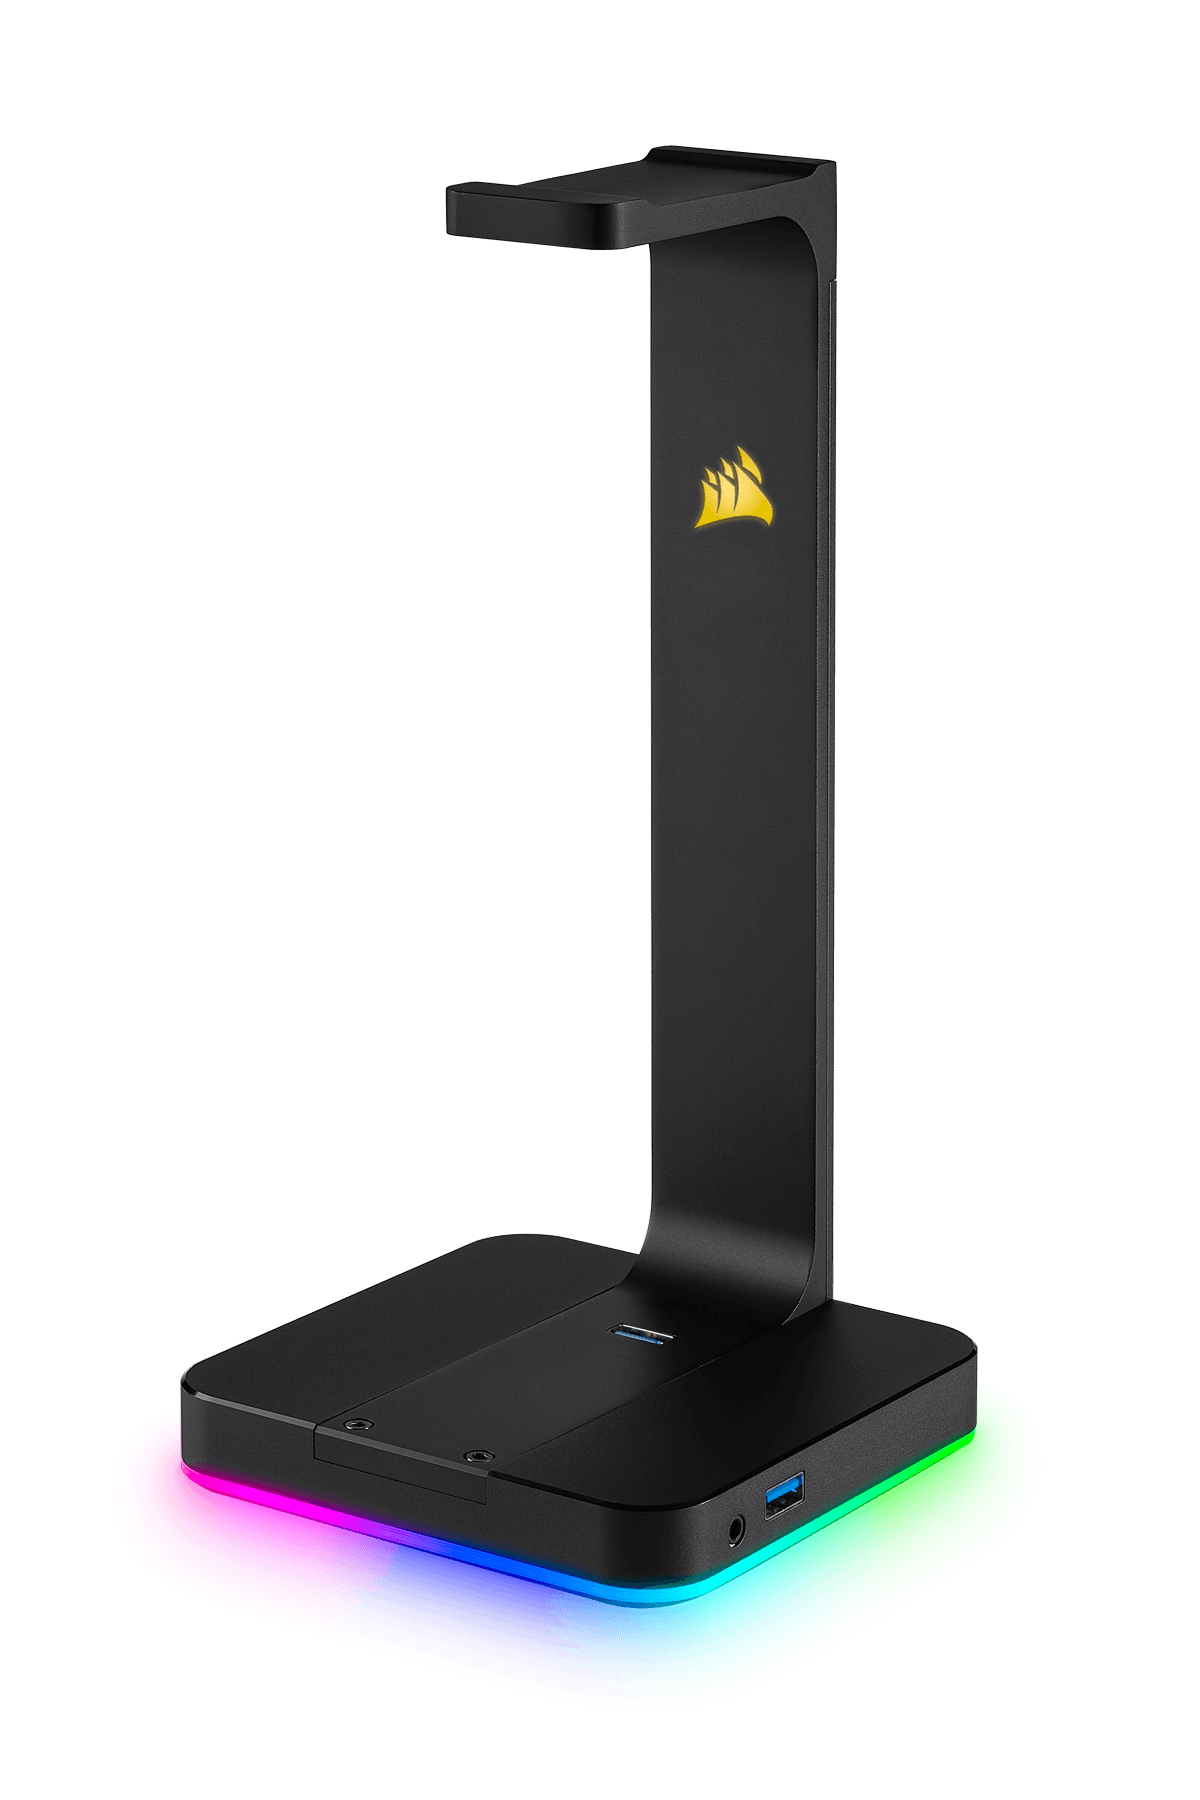 Corsair Gaming ST100 RGB Headset Stand 7.1 Surround Sound